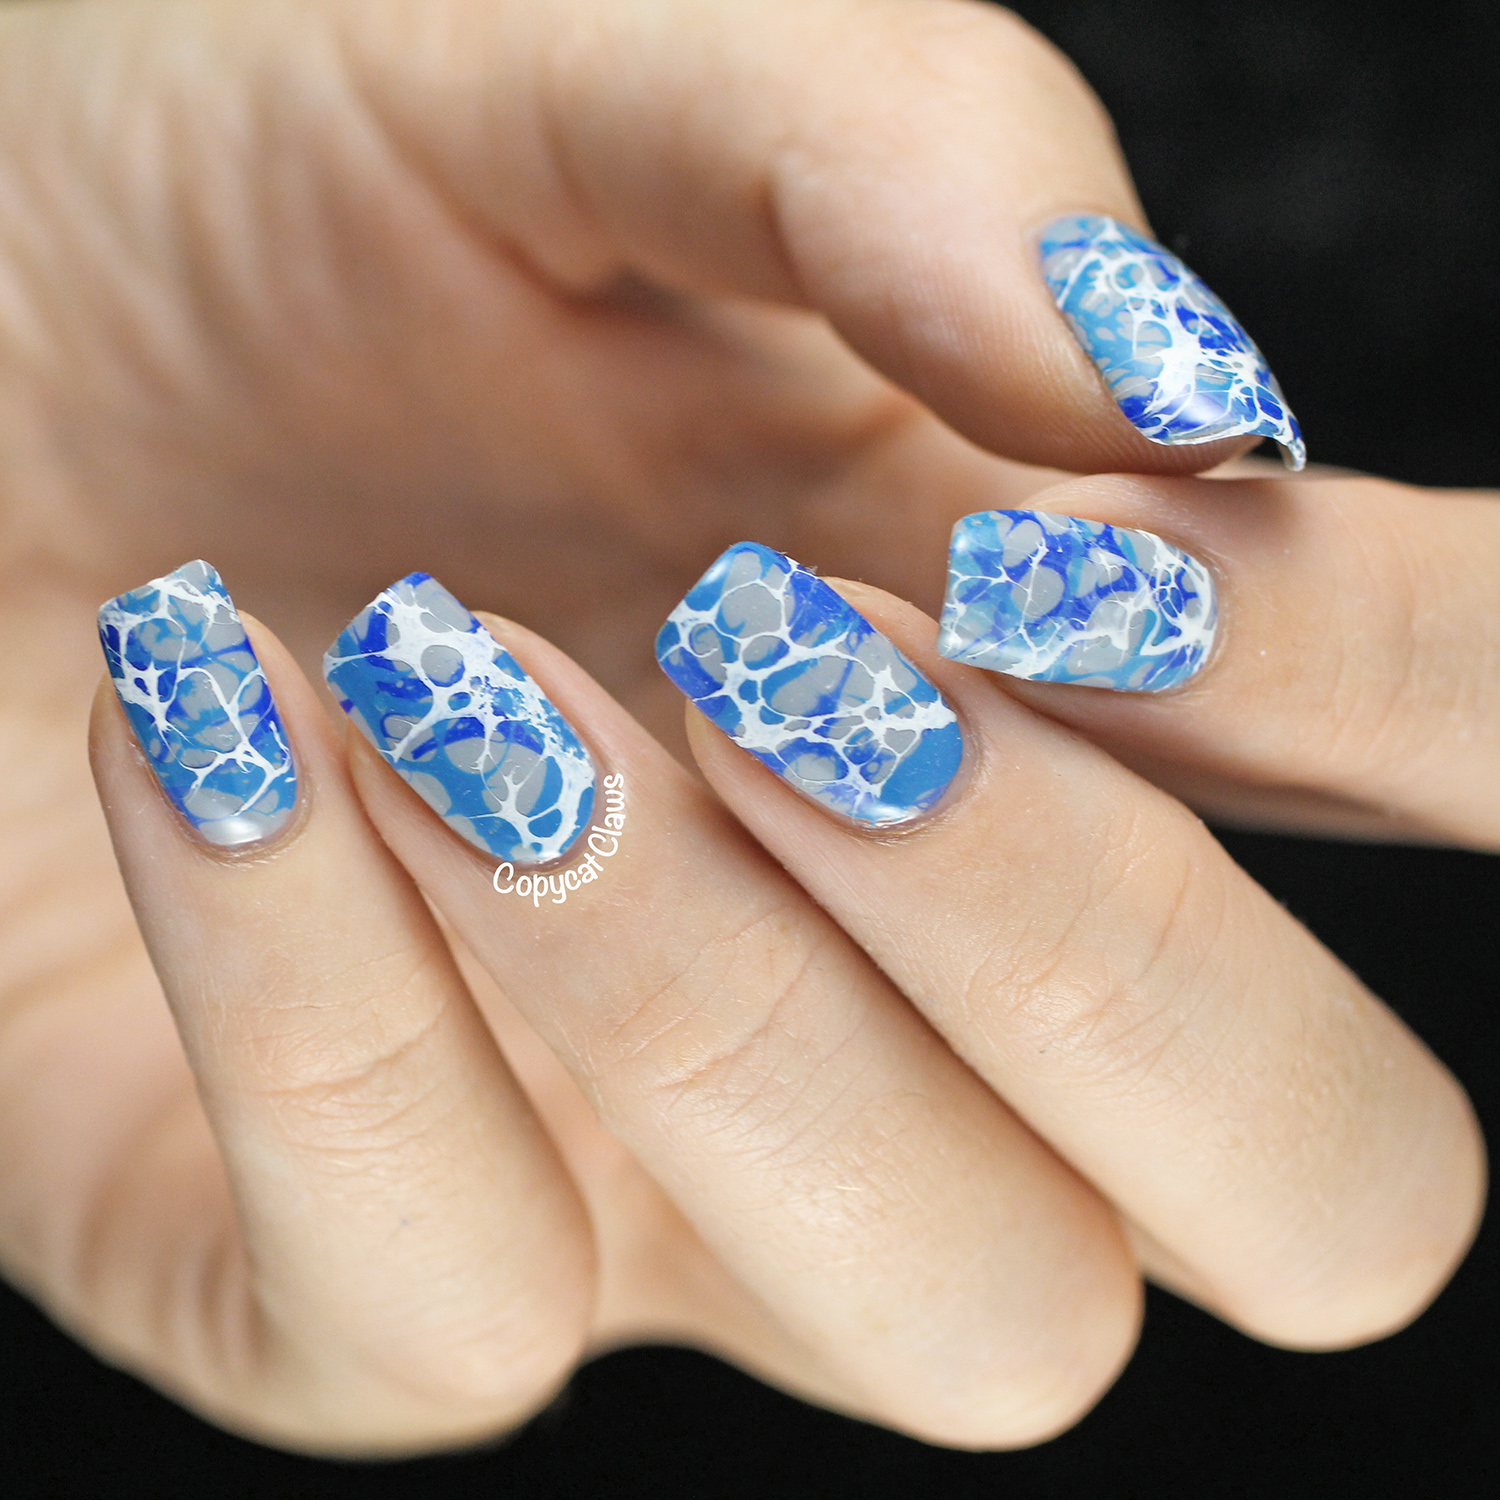 Copycat Claws Blue Color Block Nail Art: Copycat Claws: Triple Water Spotted Nails